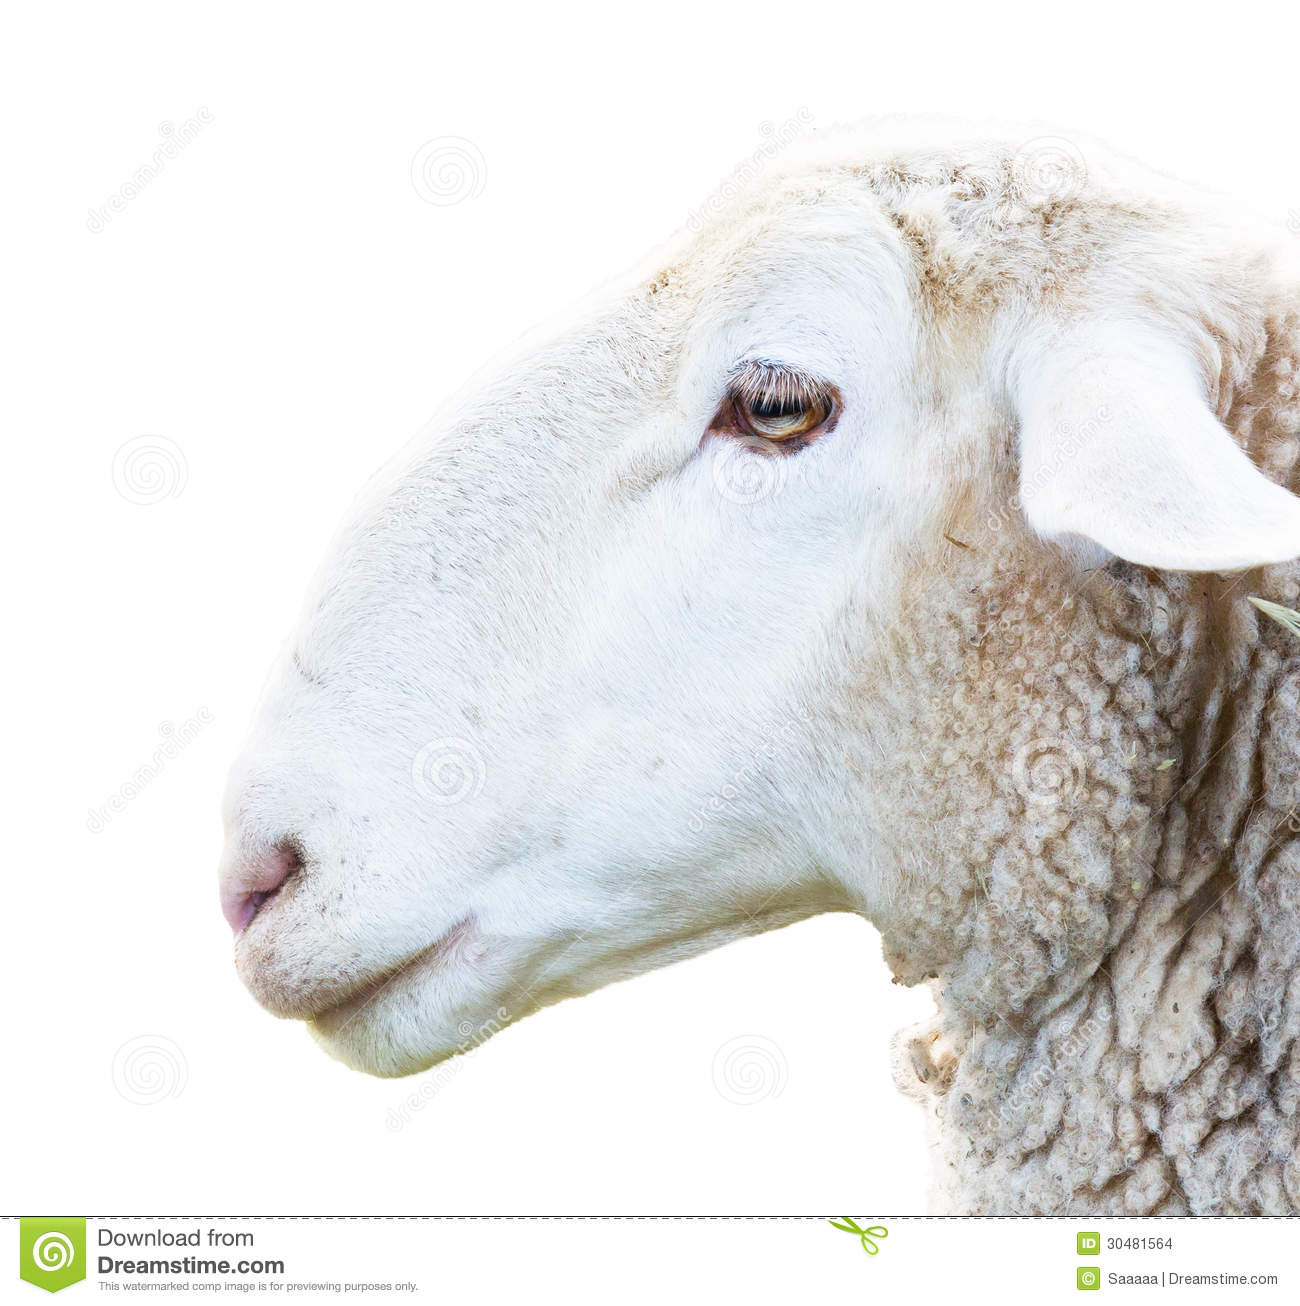 Sheep Head Stock Images - Image: 30481564